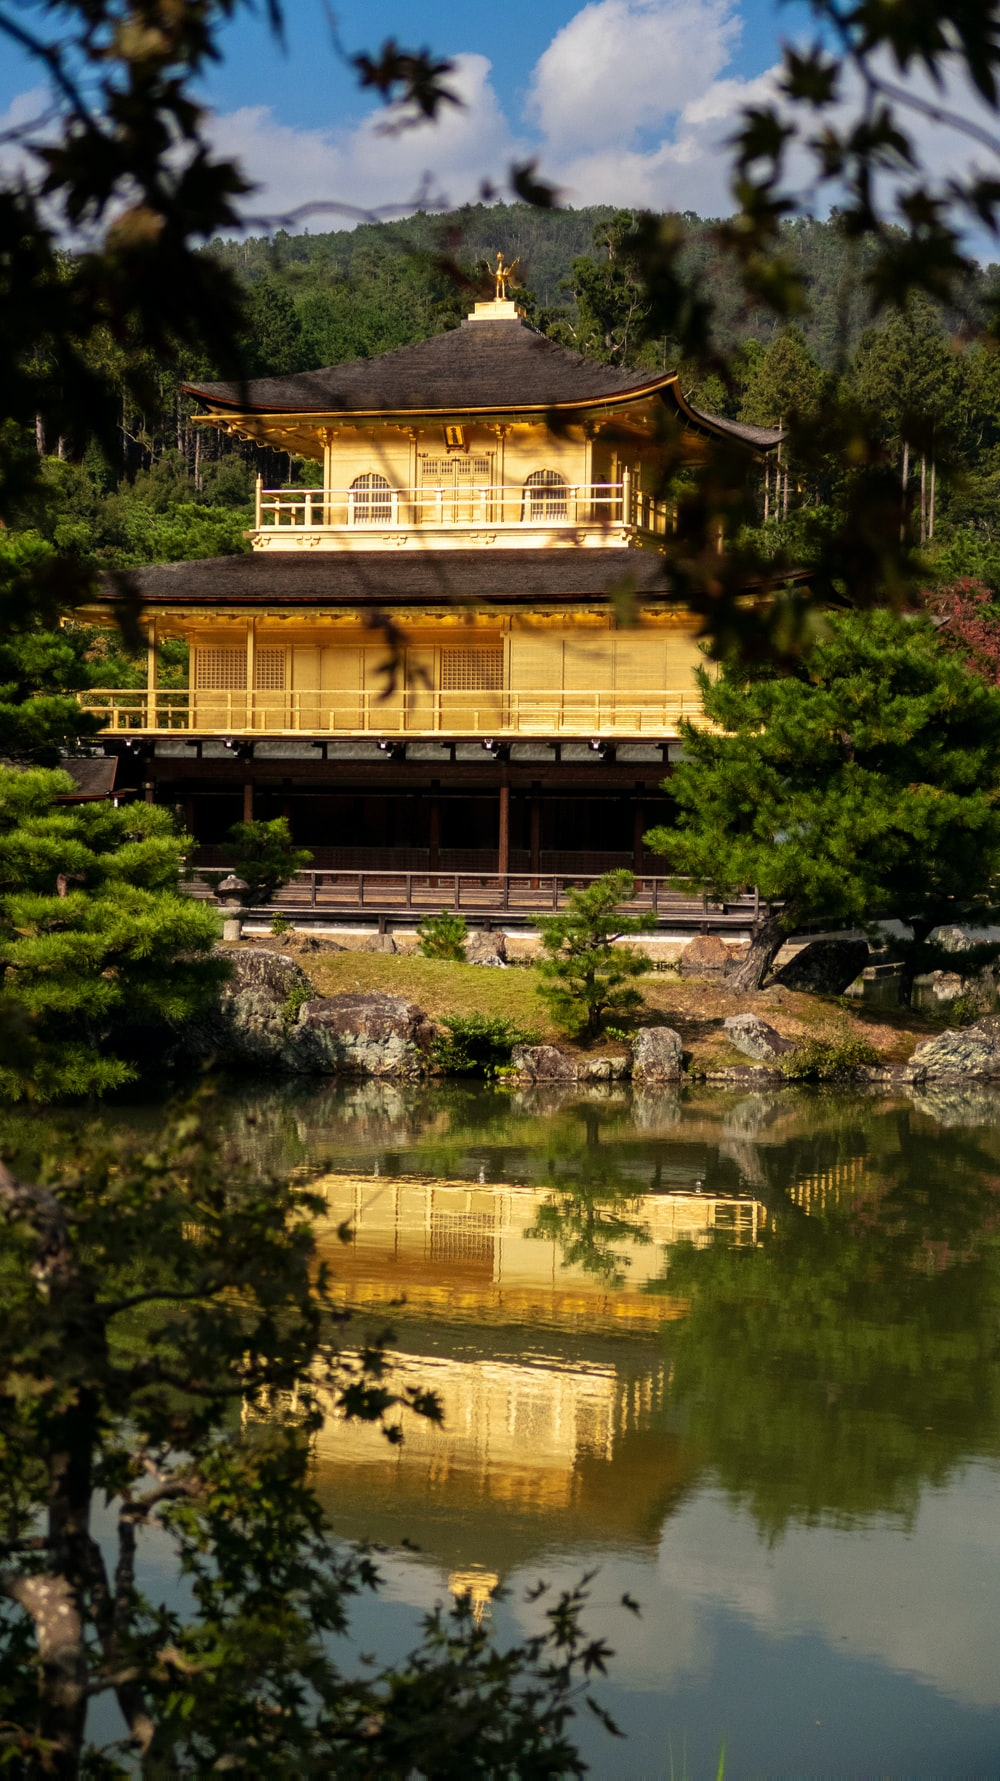 yellow and black temple between trees facing body of water